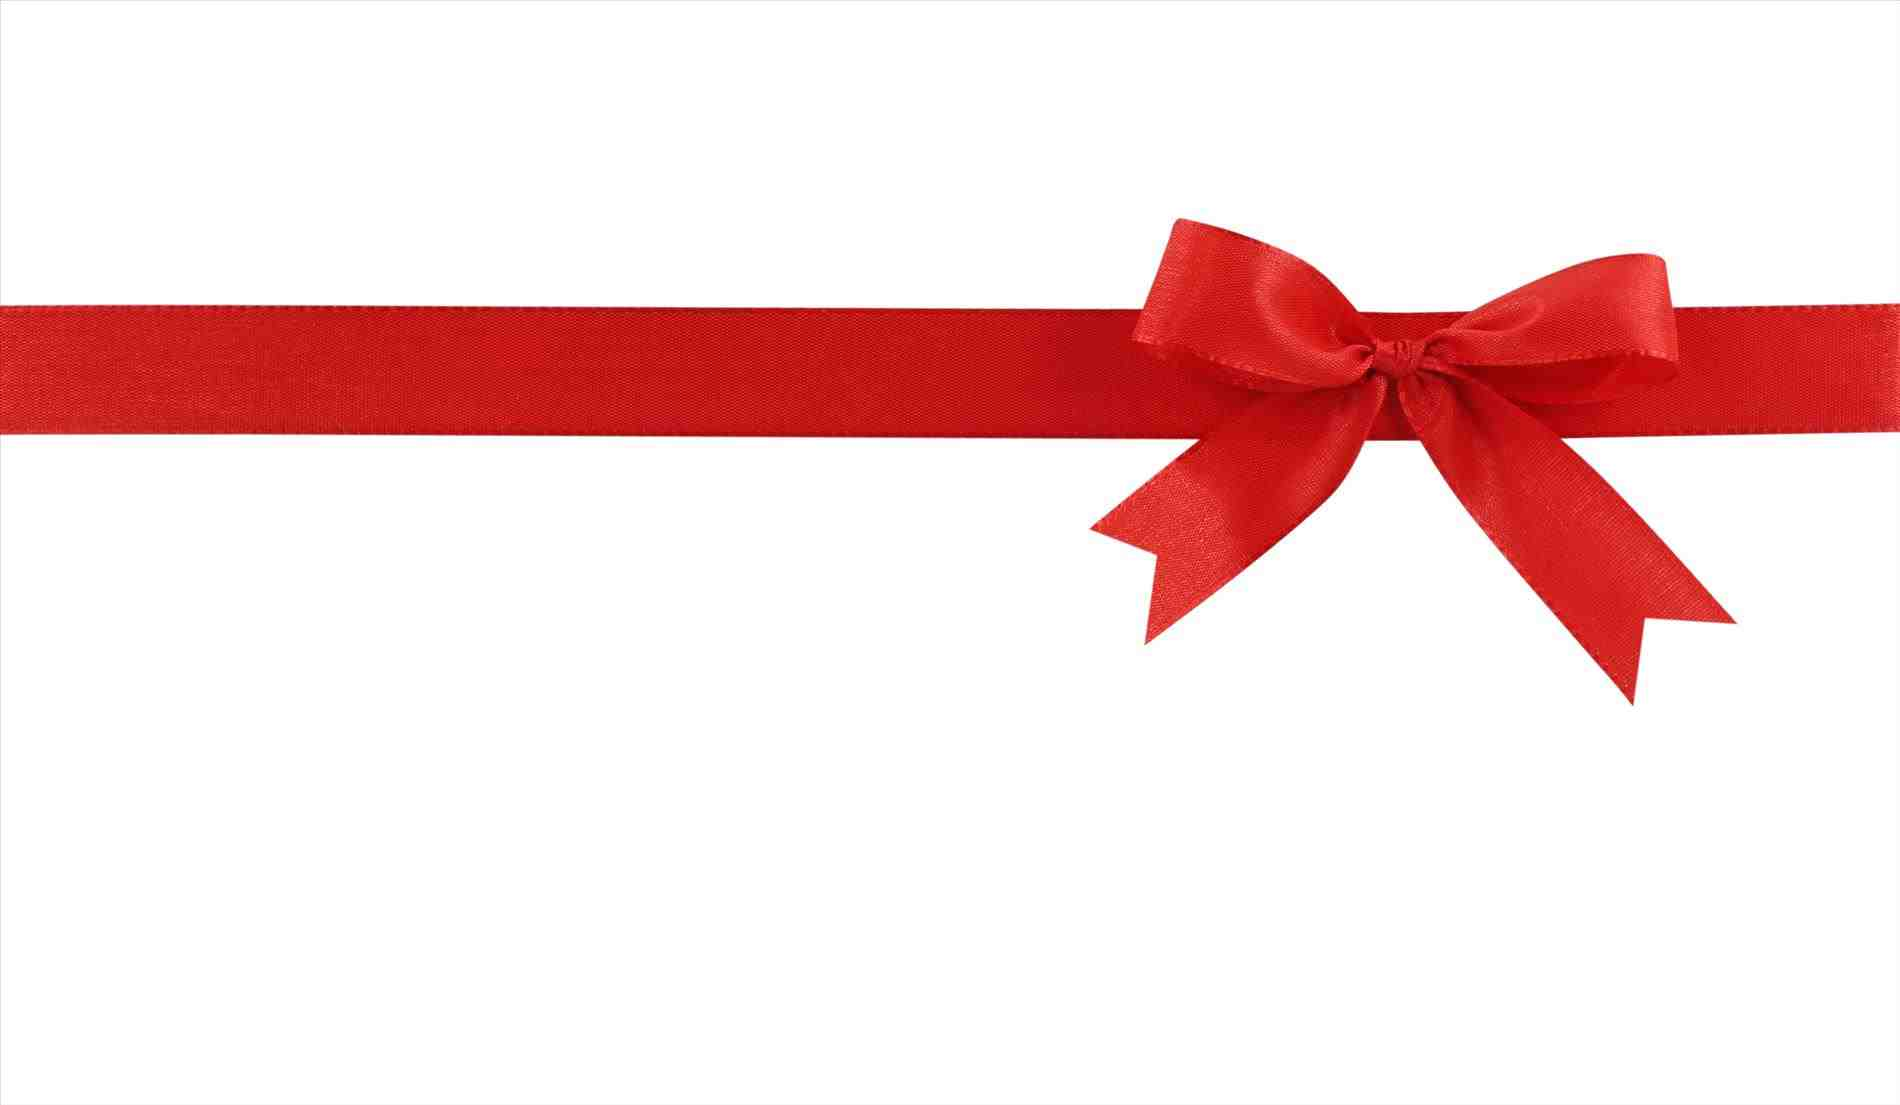 1900x1105 Christmas Bow Transparent Background Cheminee.website